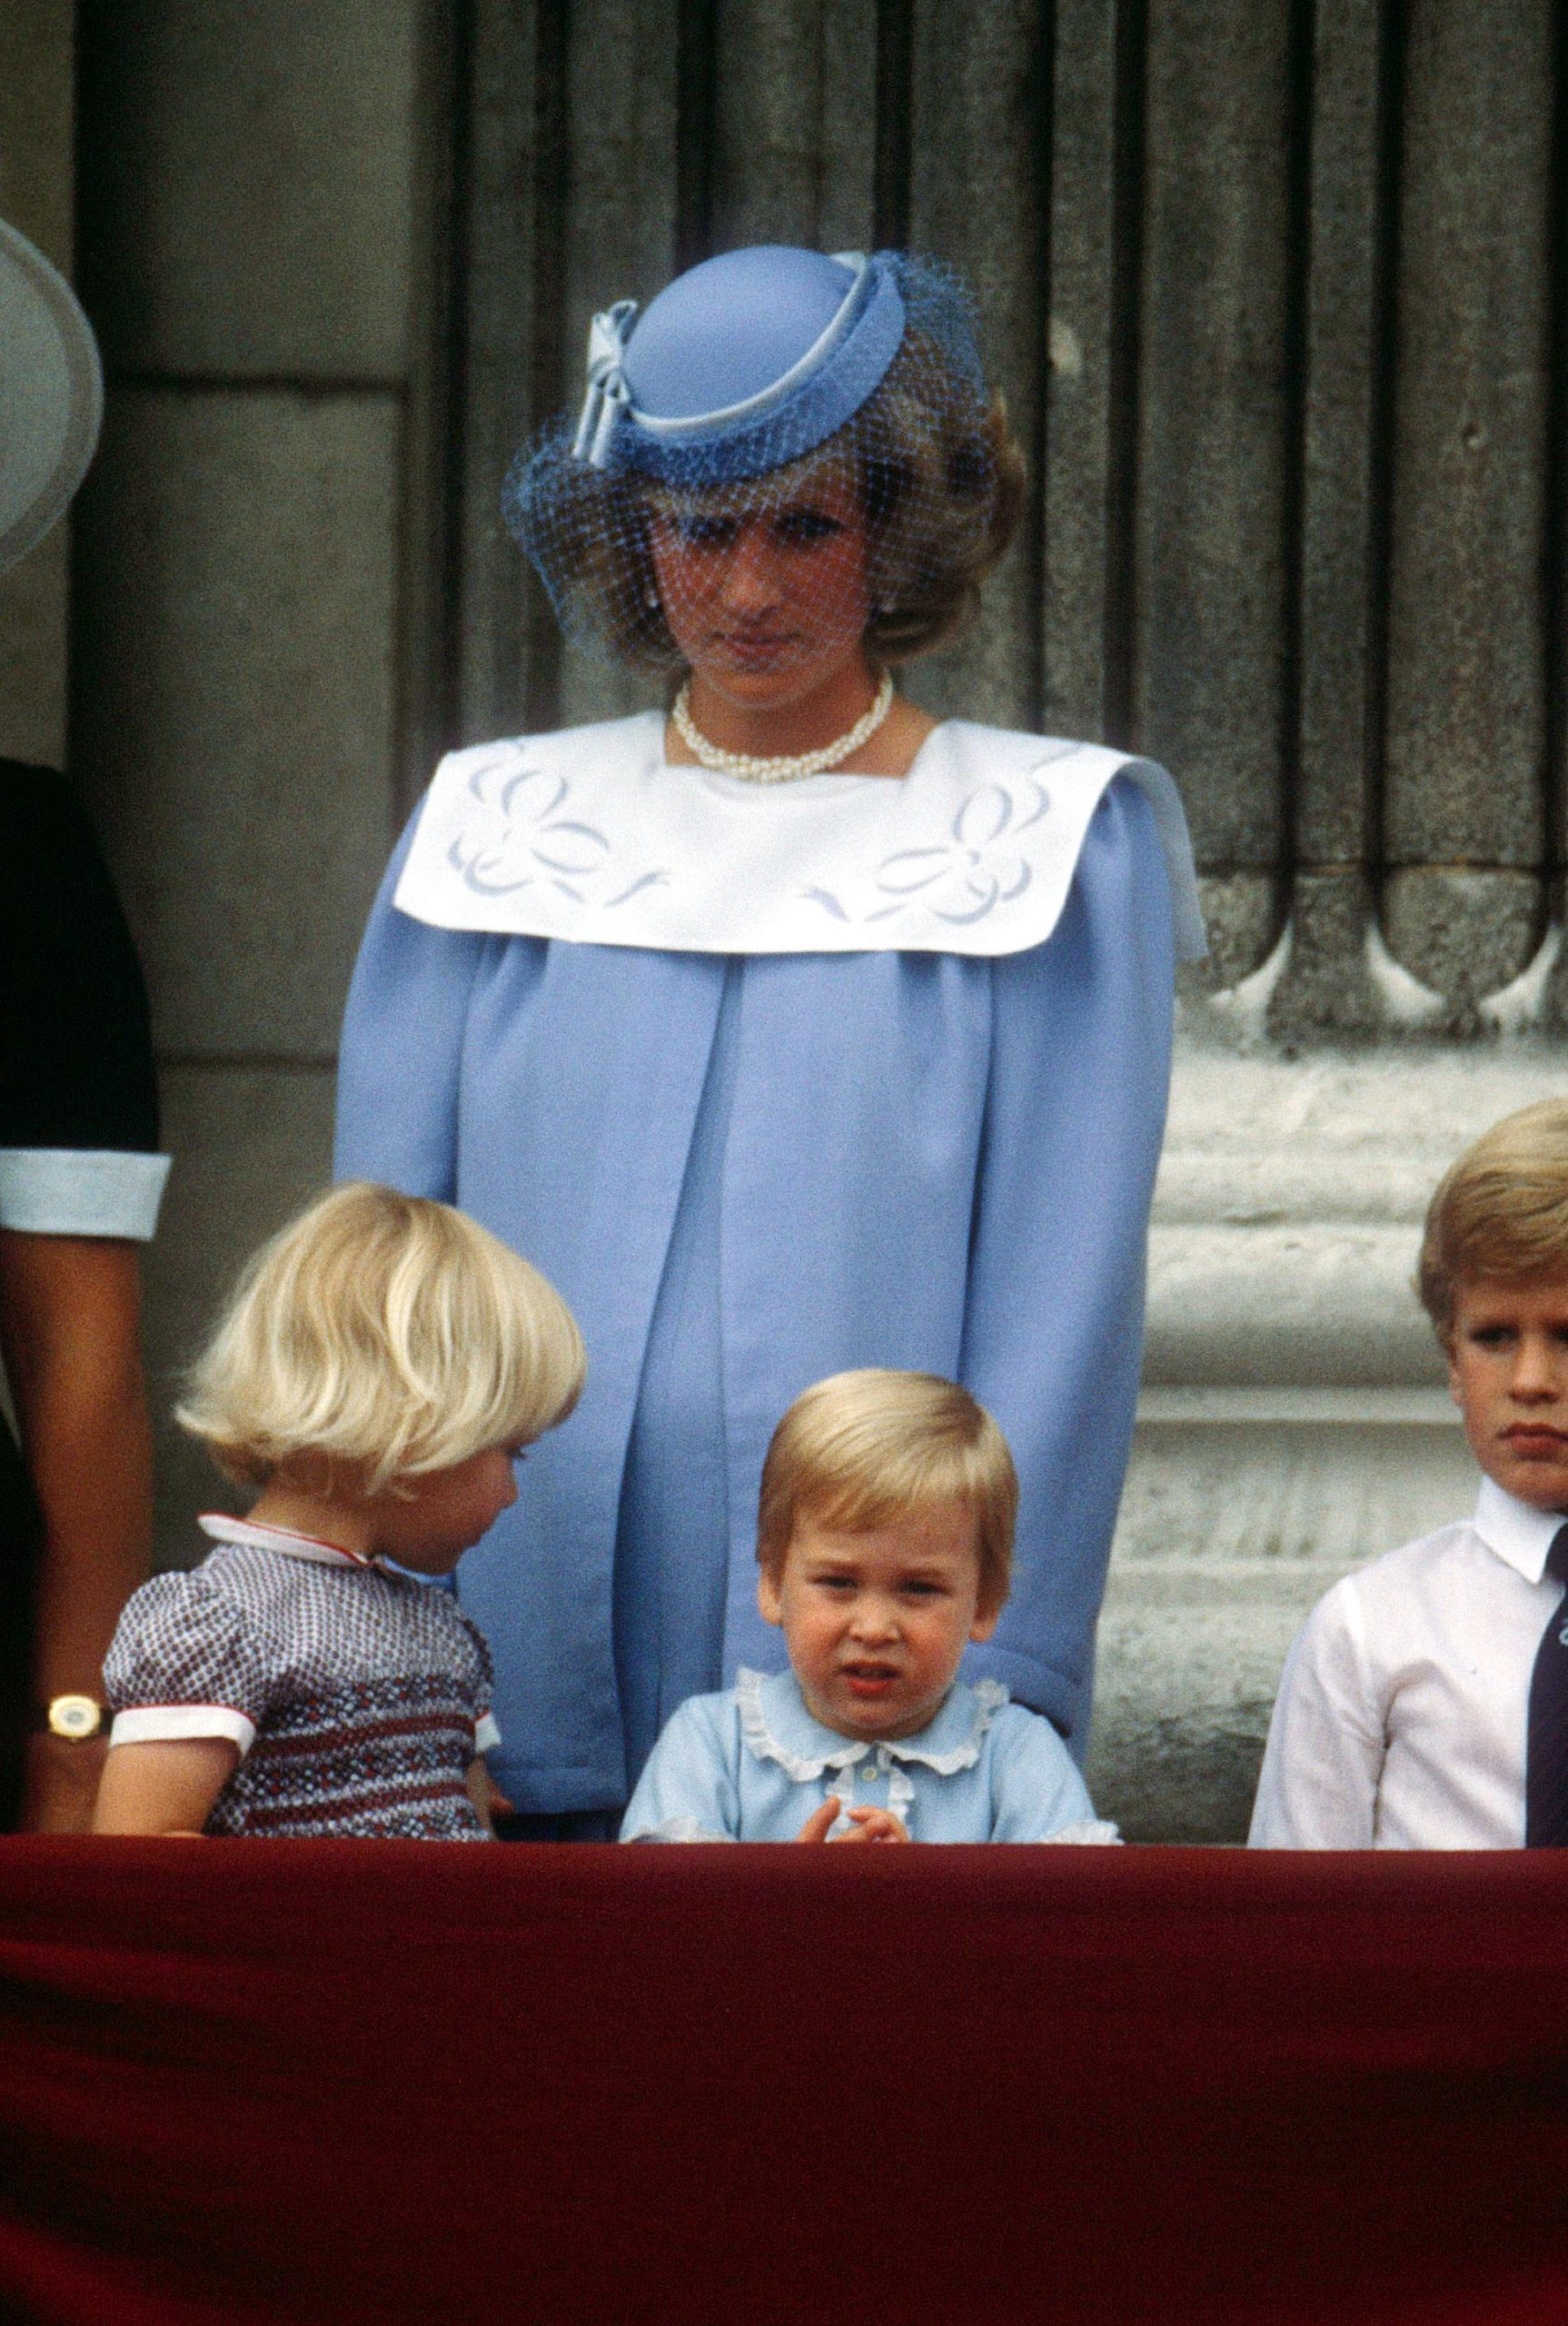 PRINCESS DIANA, PRINCE WILLIAM Trooping of the Colour, London, Britain - 1984